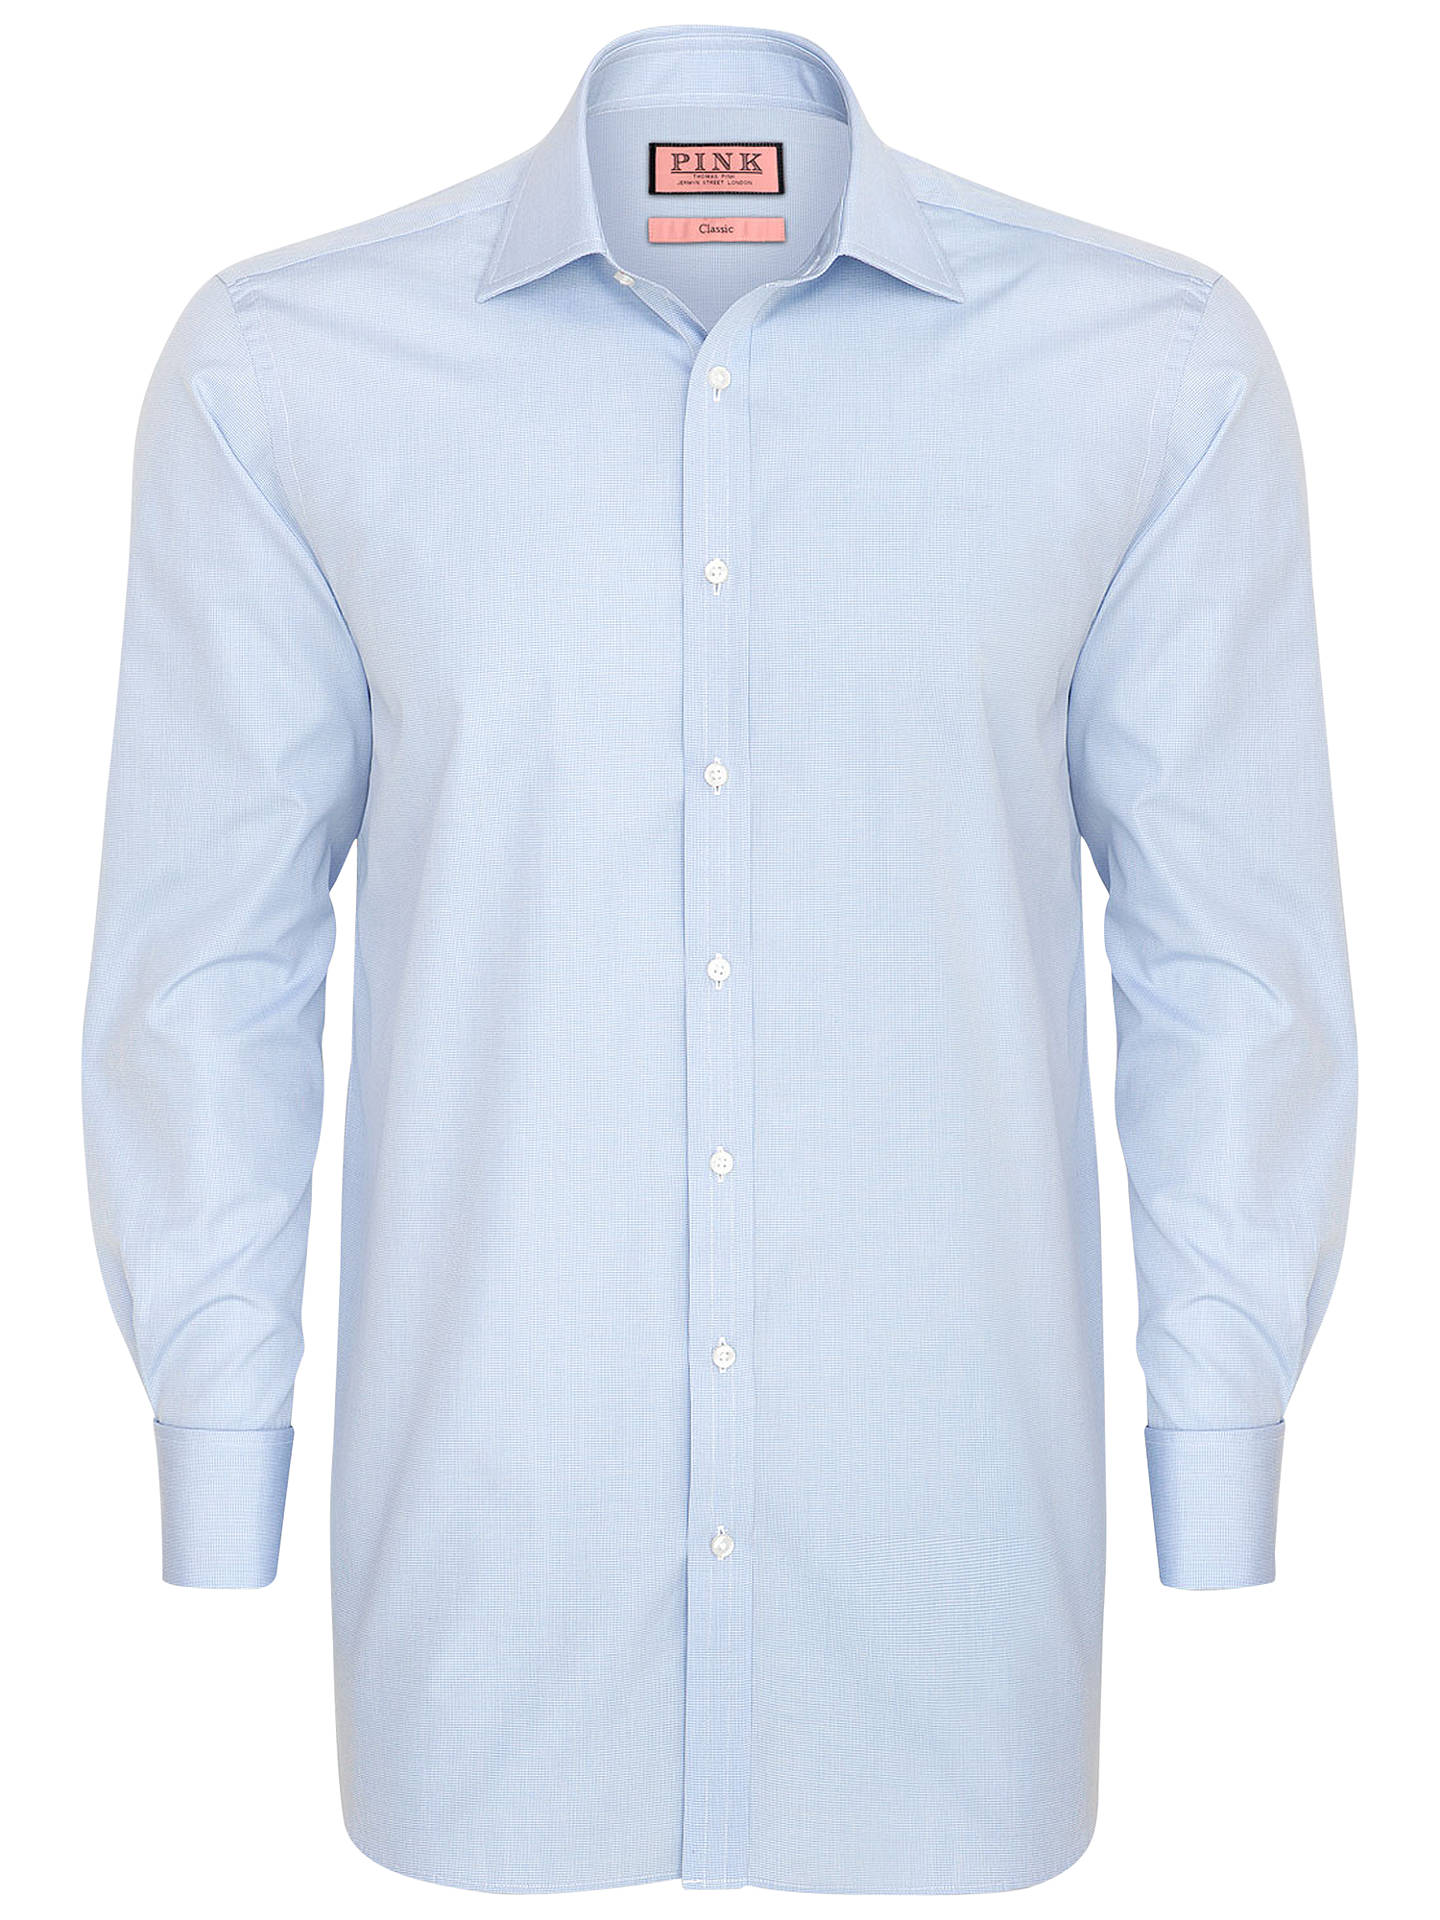 Buy Thomas Pink Houndstooth Long Sleeve Shirt, Blue, 14.5 Online at johnlewis.com